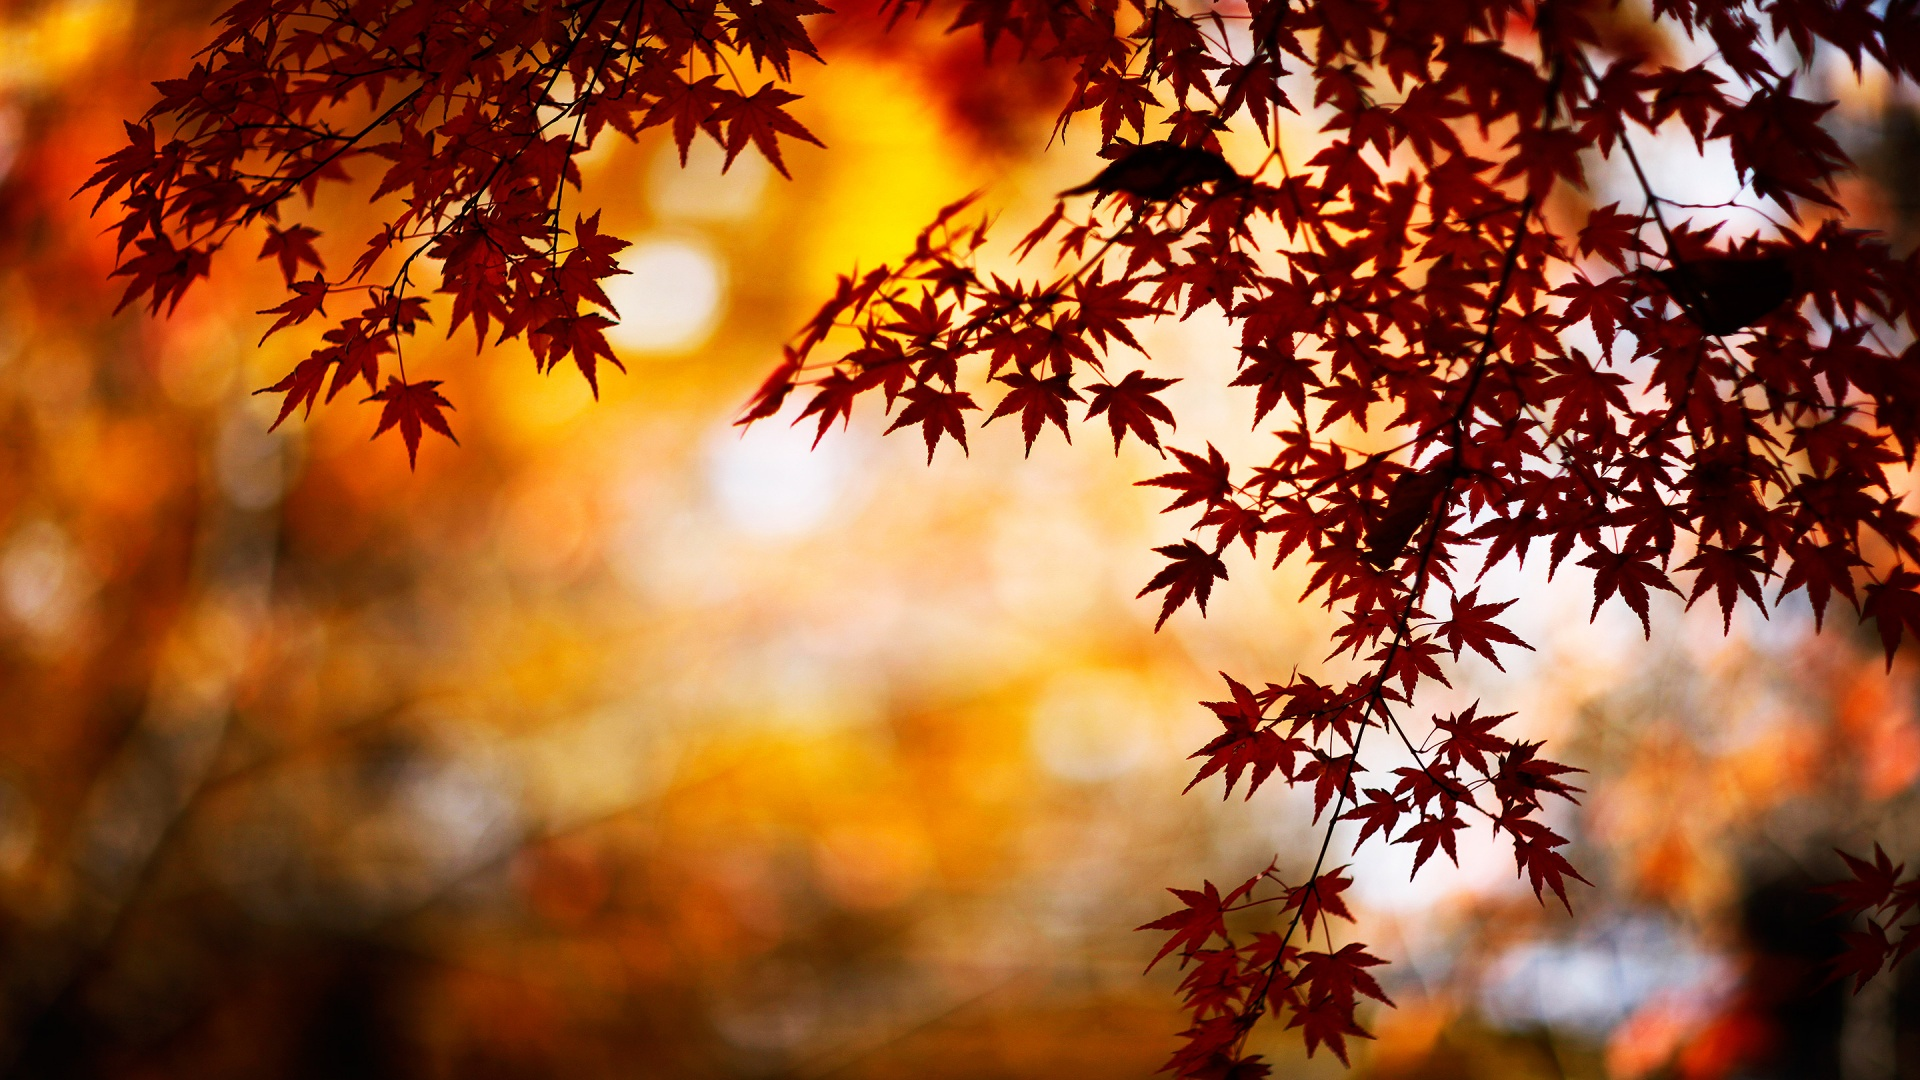 Fall Wallpapers HD | PixelsTalk Net